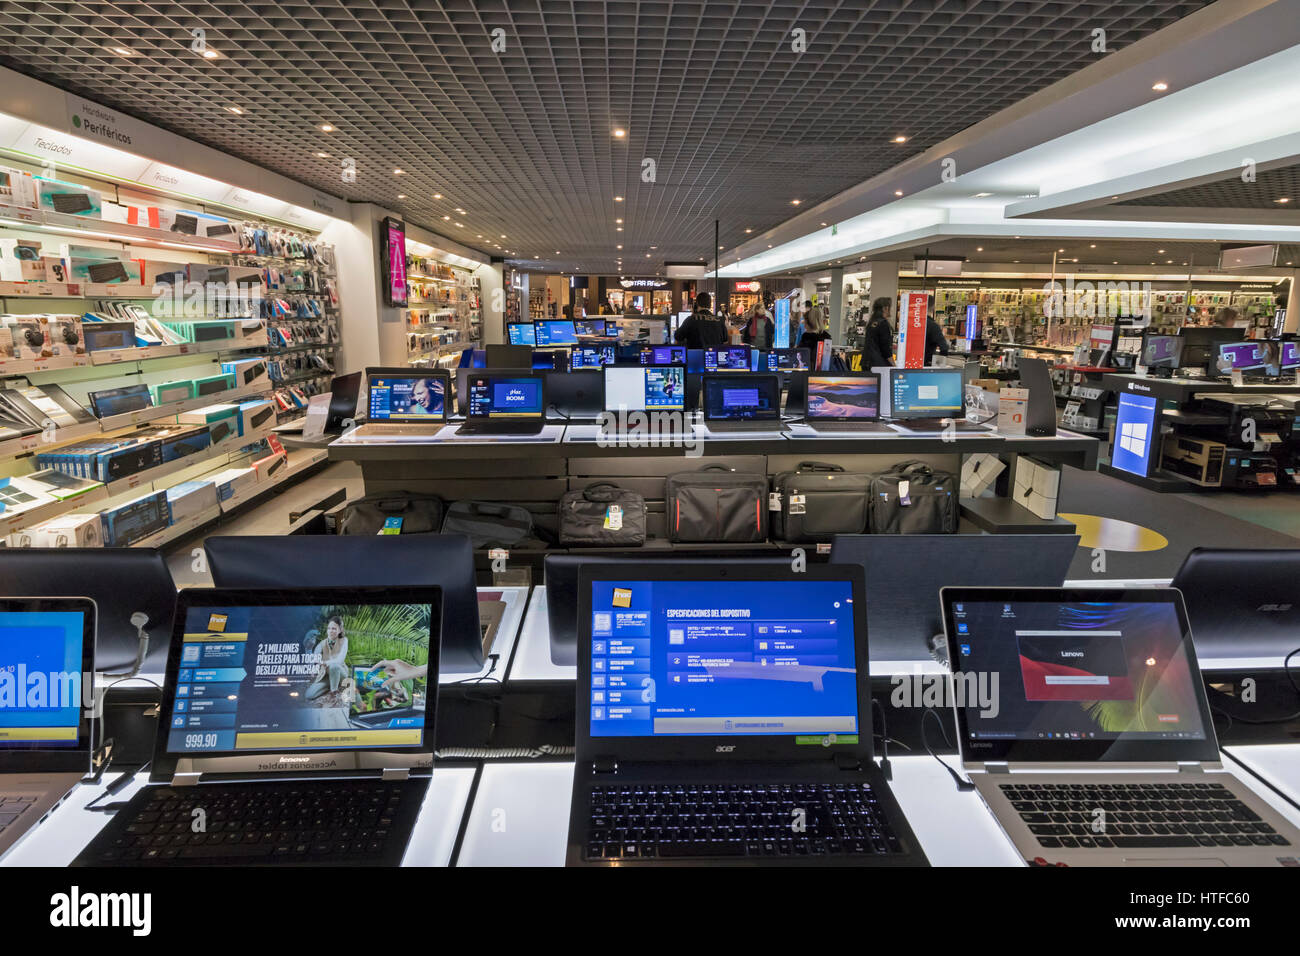 Marbella, Costa del Sol, Malaga Province, Andalusia, southern Spain.  Laptop computers on sale at FNAC department - Stock Image